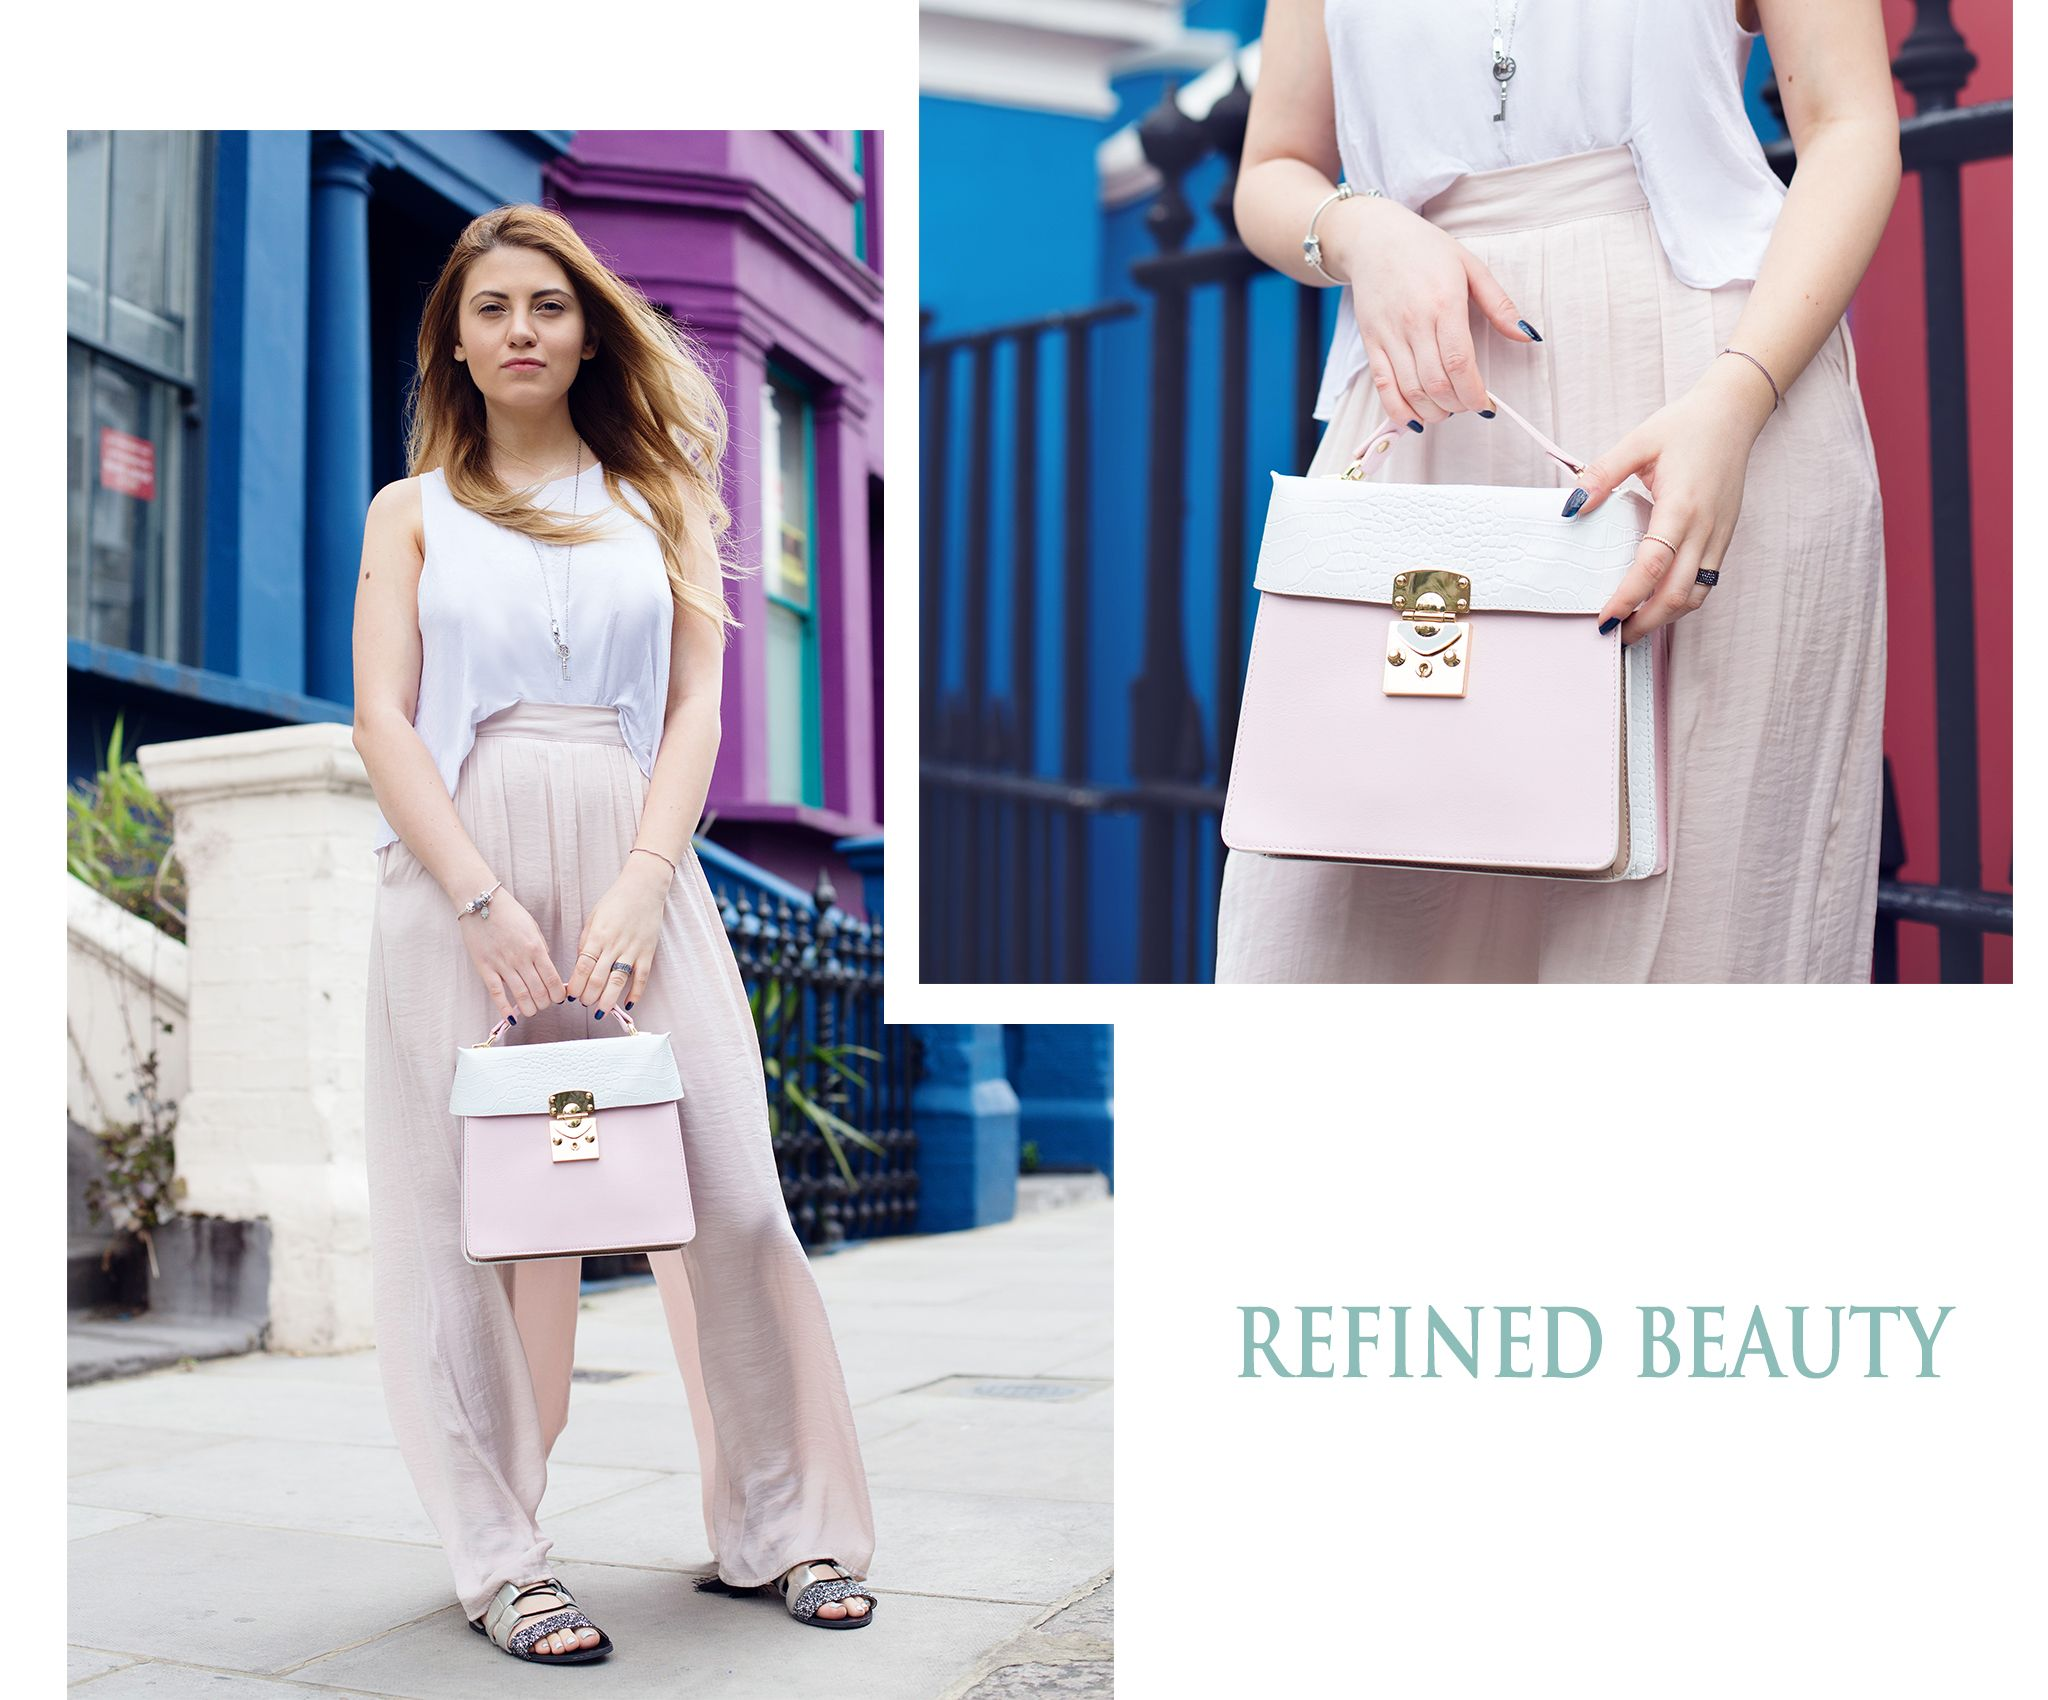 The new Amanda pink leather bag has a simple, yet stylish elegant vibe meant to offer your outfit a feminine look. Wear it next to silky tops and trousers colored in delicate  nude shades.